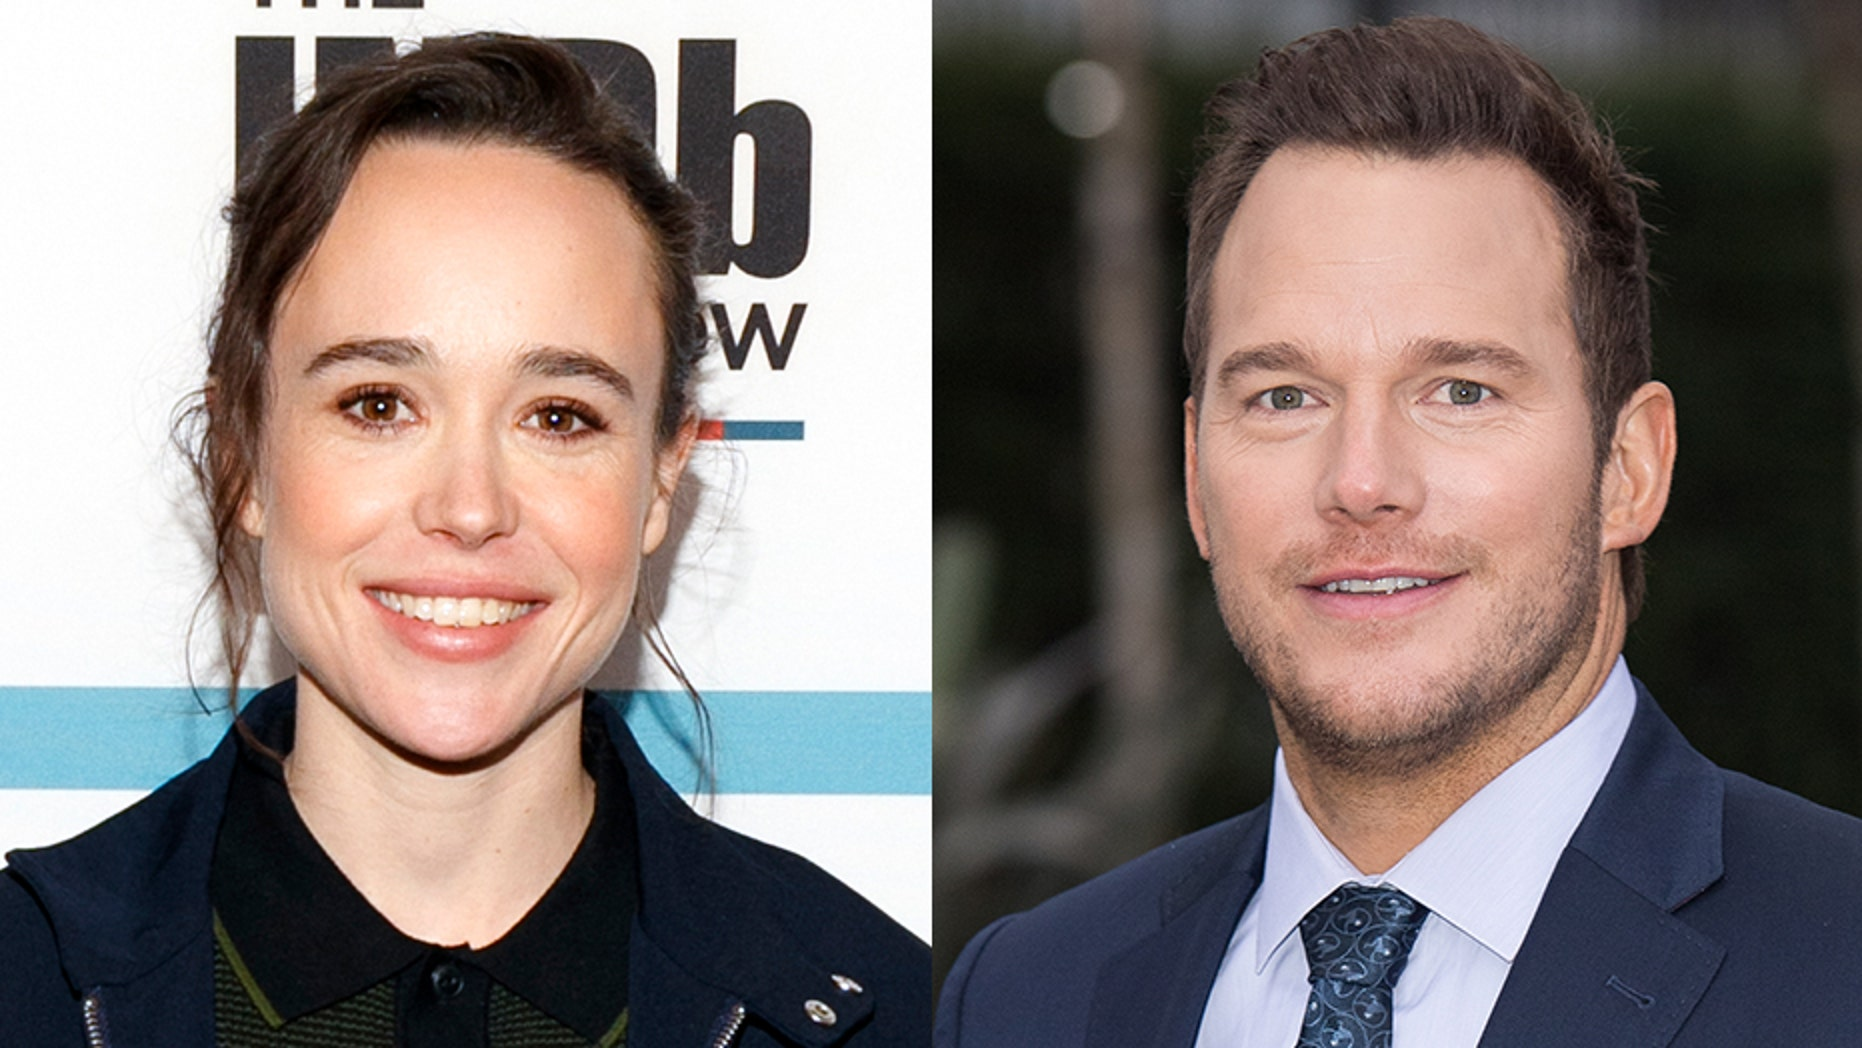 Ellen Page doubled her comments on Chris Pratt's visit to a church she said was